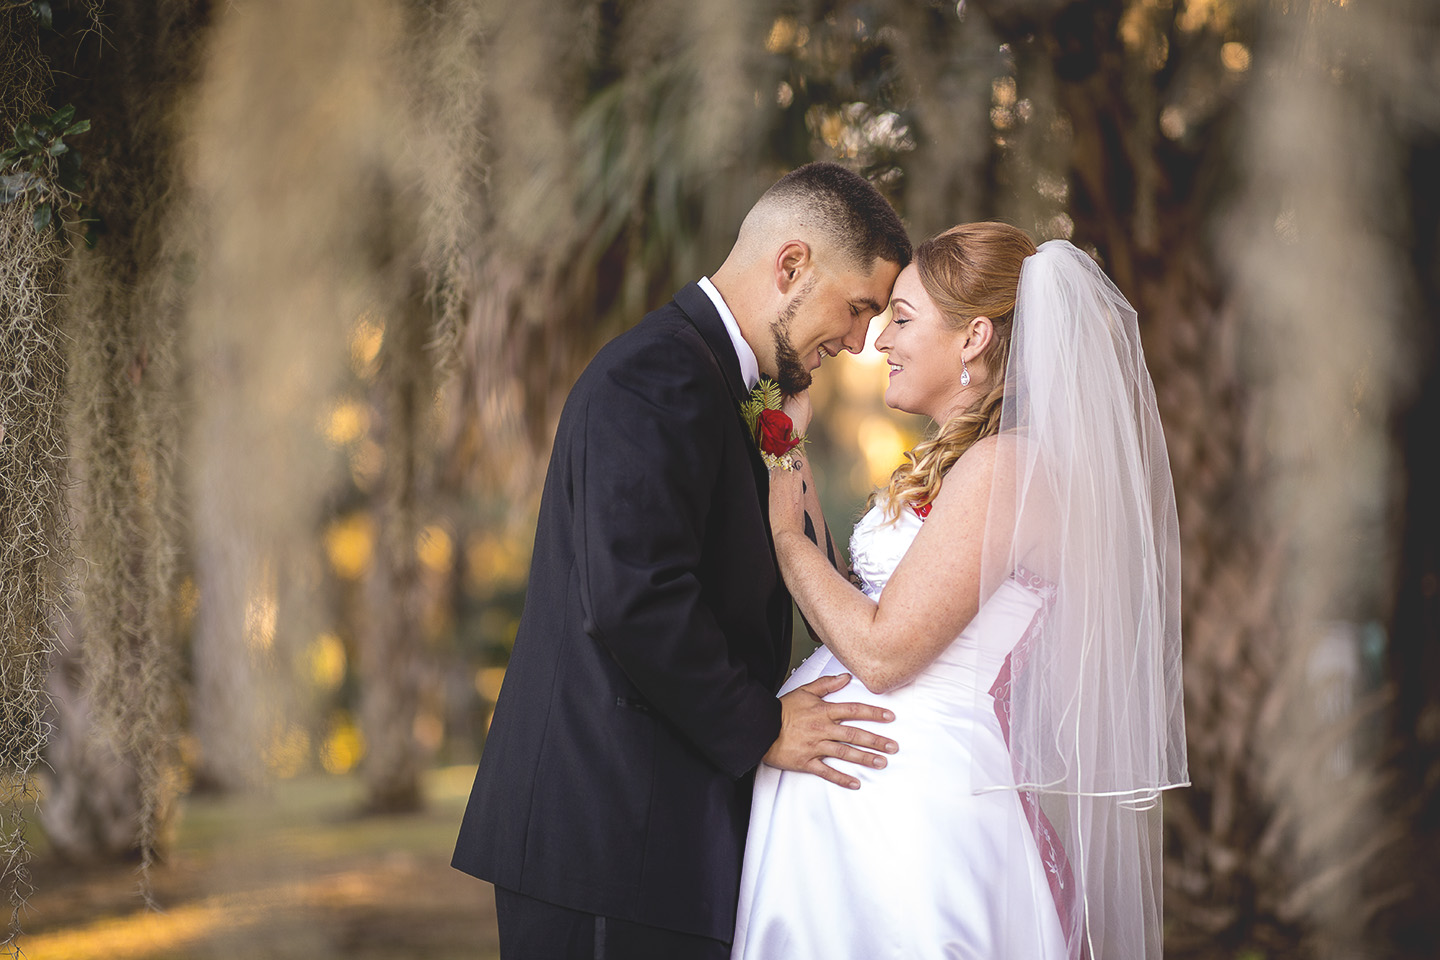 Central Florida wedding photographer, Sarah Rose Photography, pregnancy wedding